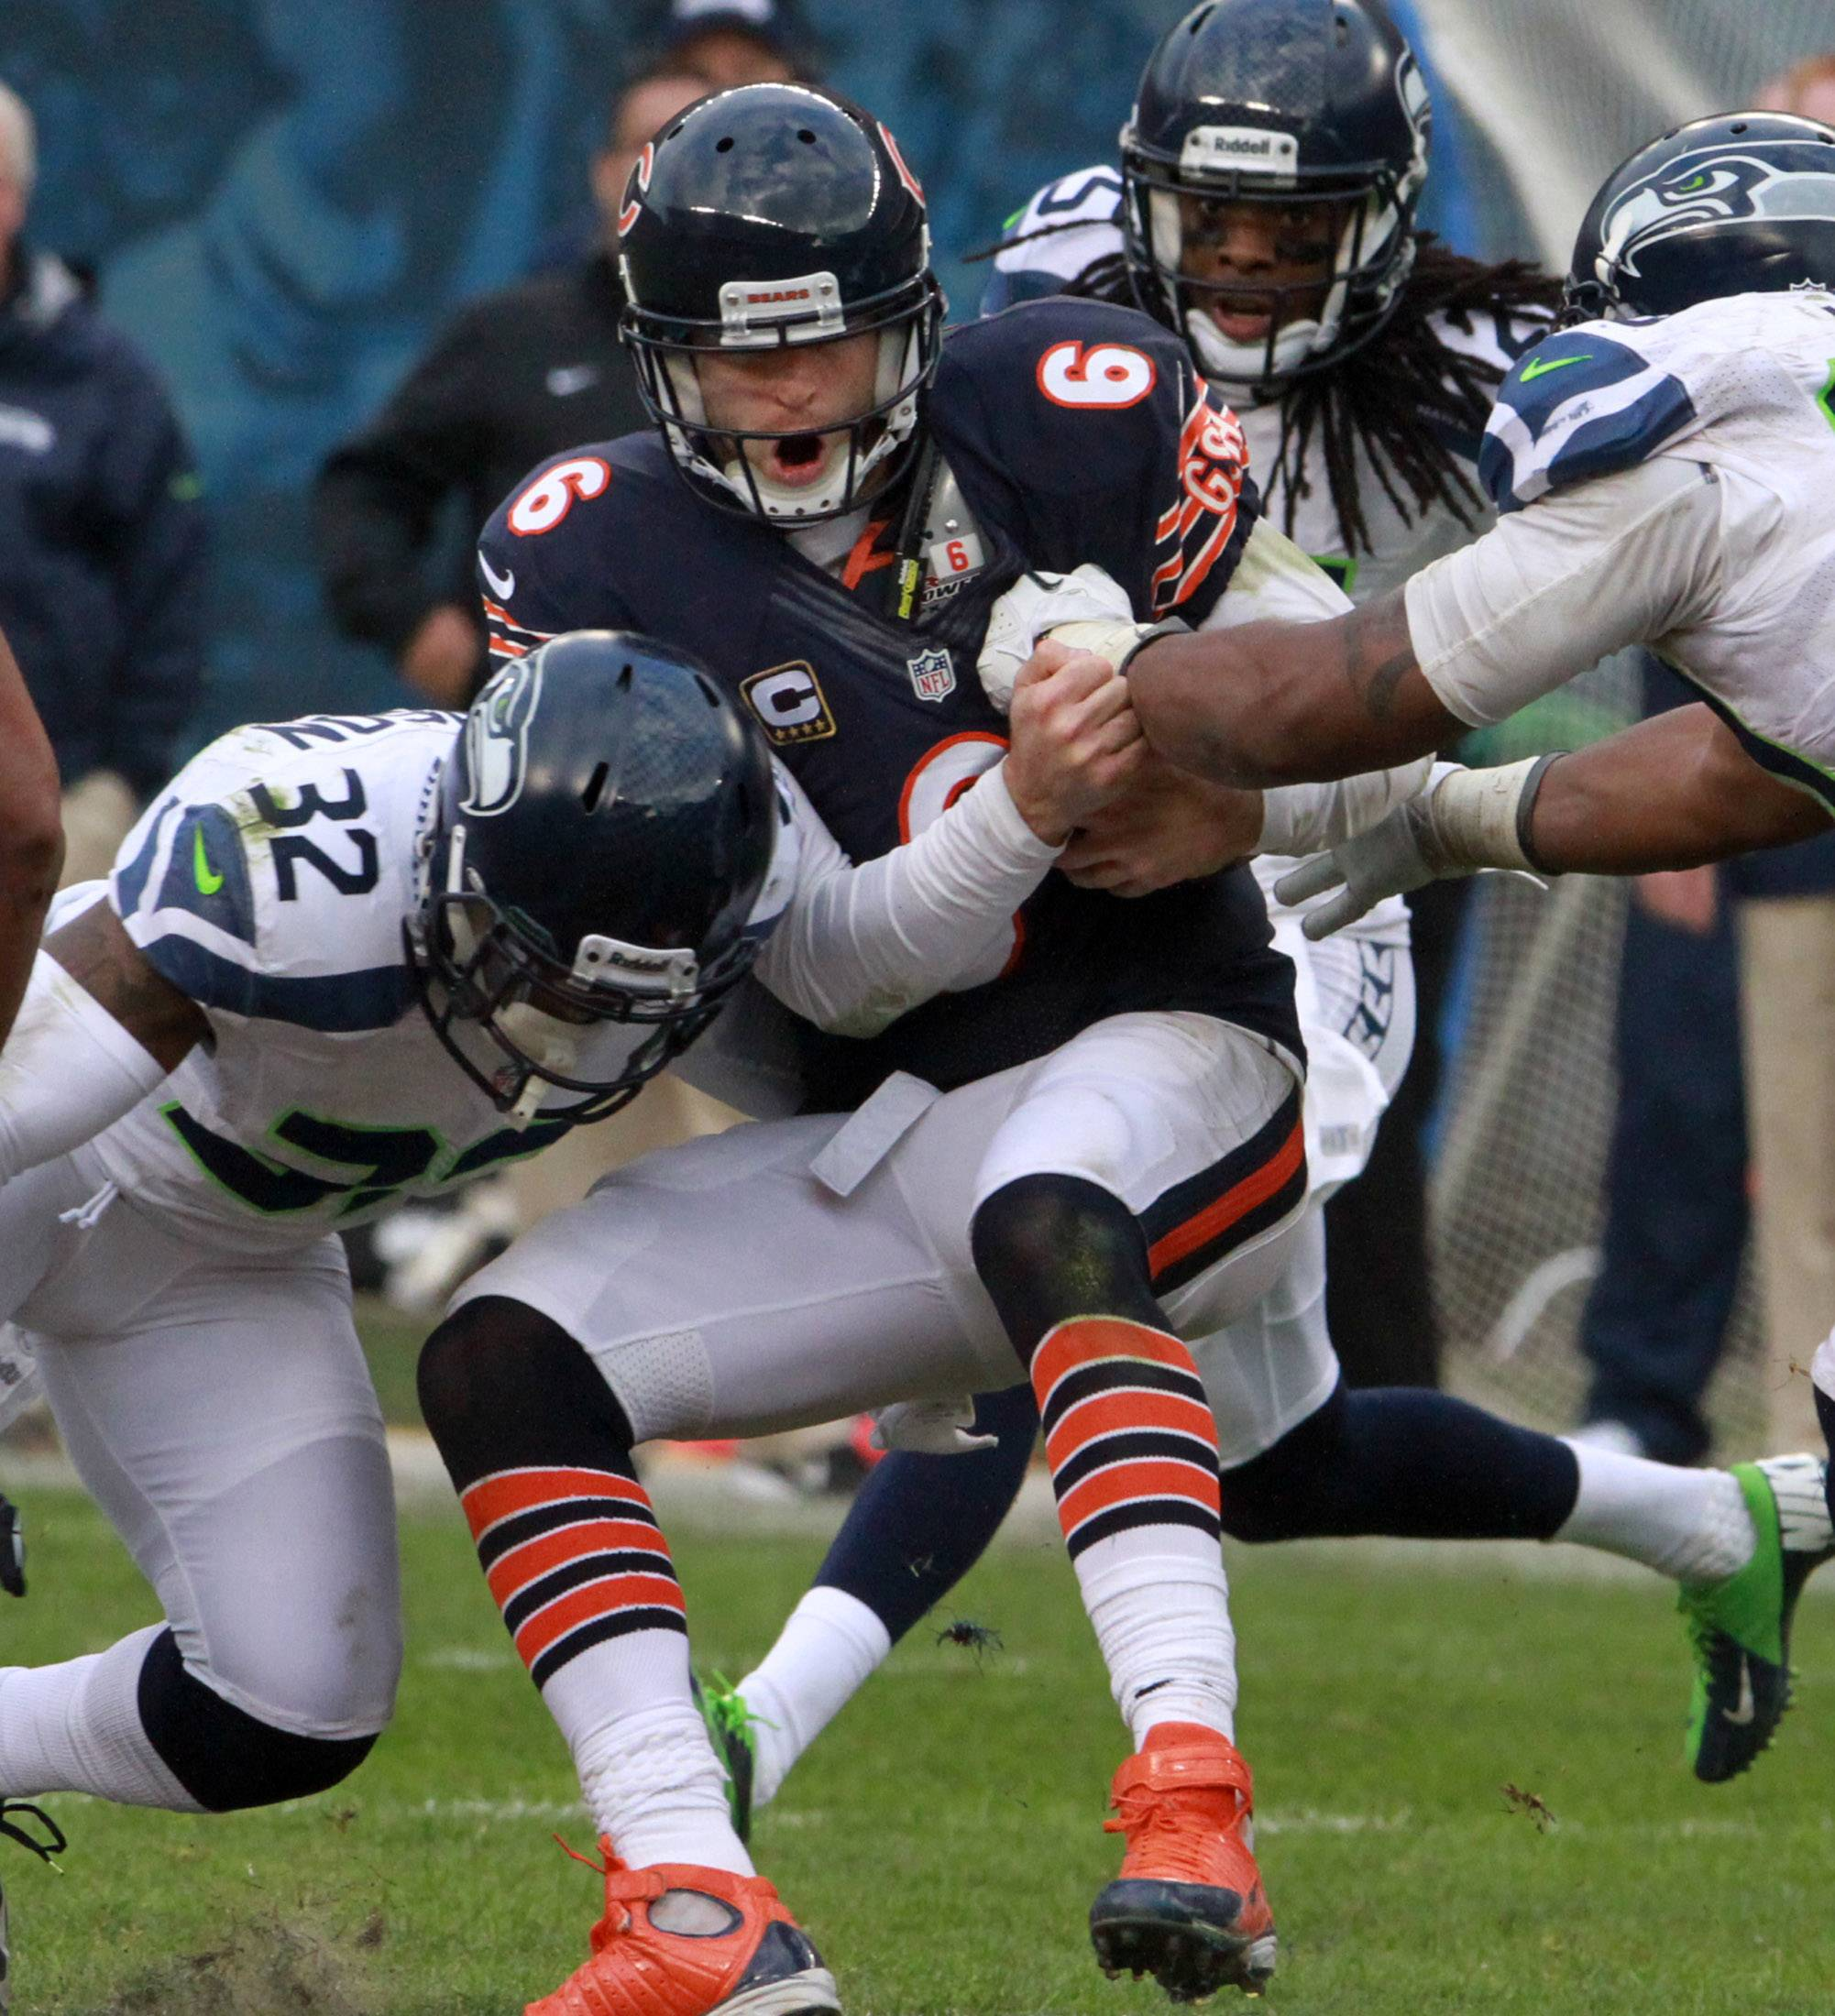 The Chicago Bears and quarterback Jay Cutler will face the Super Bowl champion Seahawks in Seattle for their third preseason game of the 2014 season. The Bears will open the preseason at home against Philadelphia.